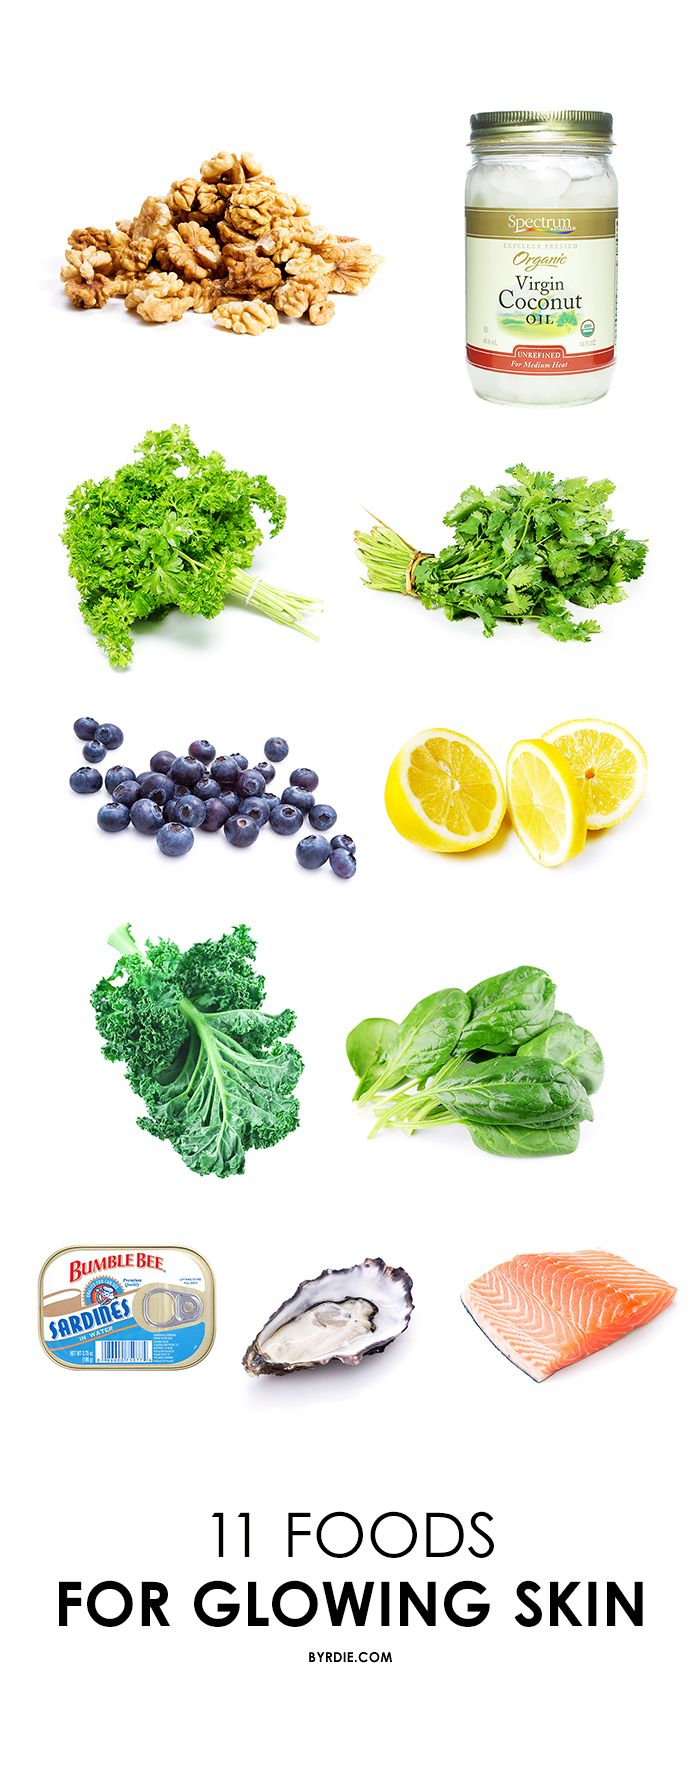 The Glowing Skin Shopping List 11 Foods To Add To Your Cart Food For Glowing Skin Foods For Healthy Skin Healthy Glowing Skin